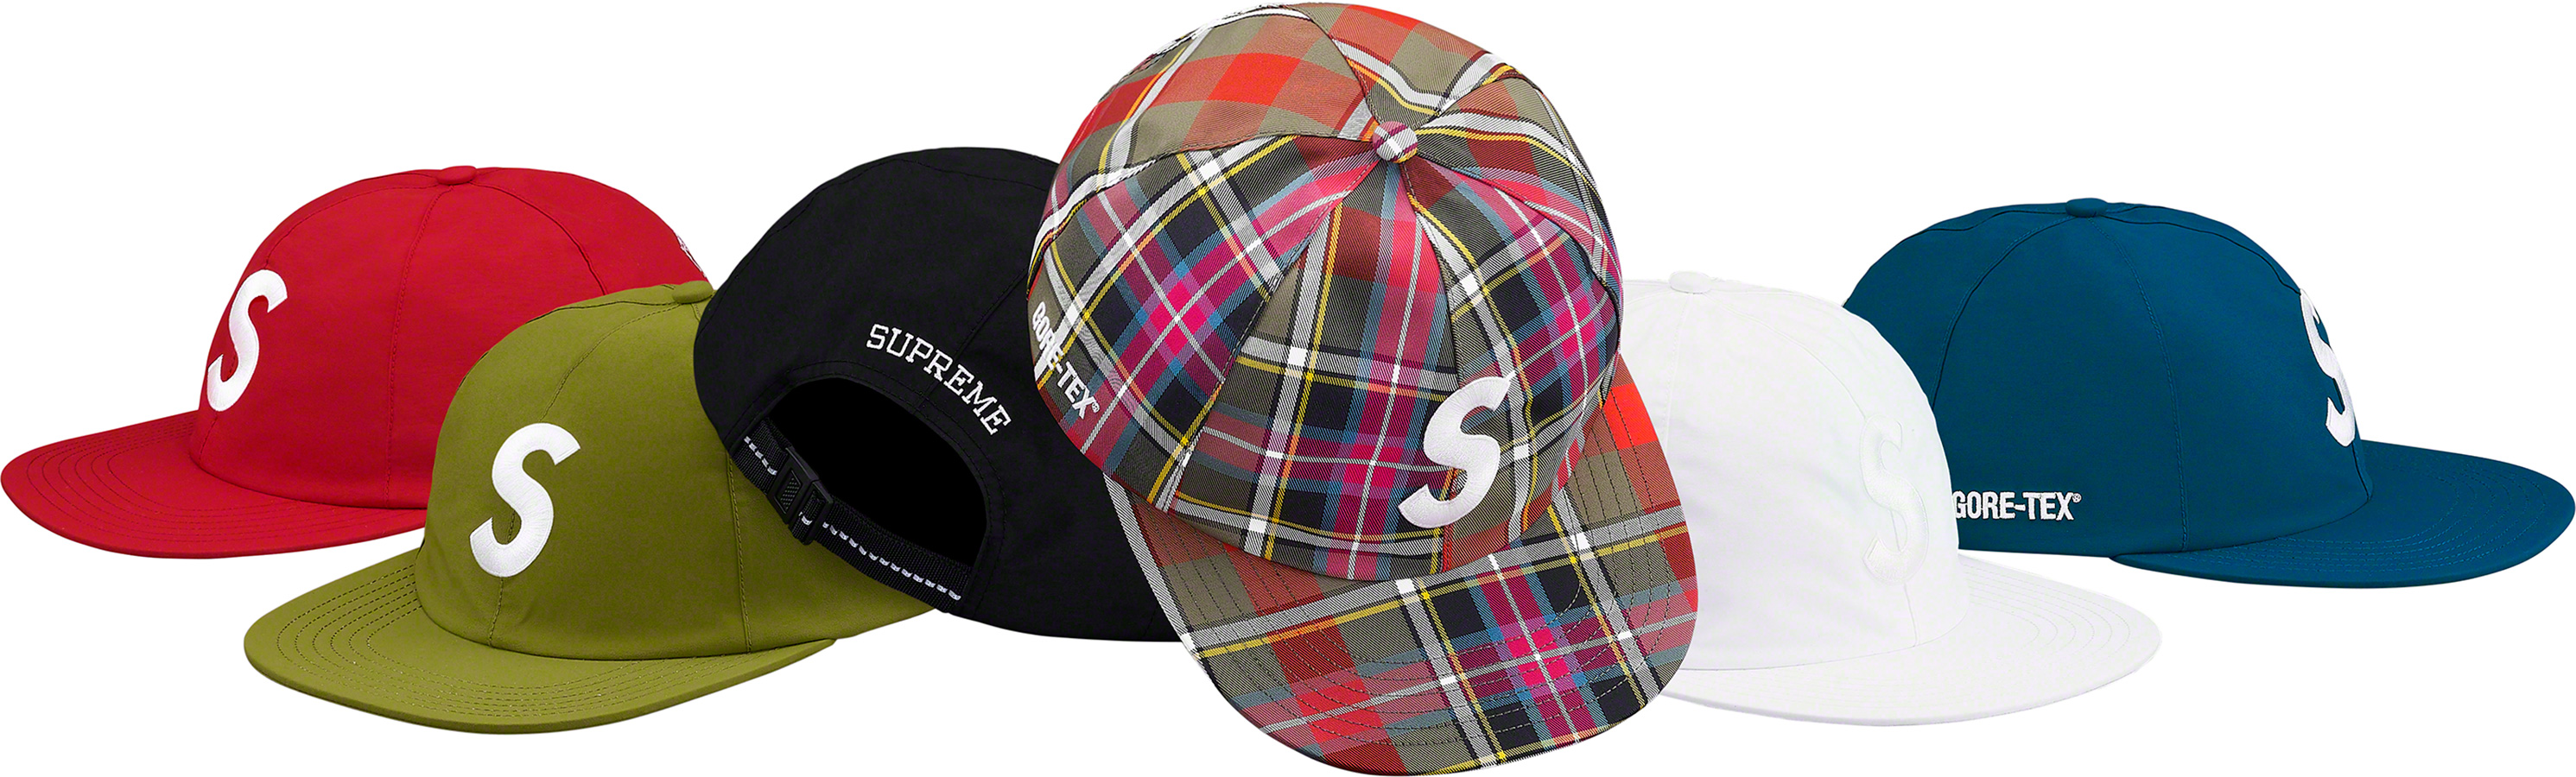 8ffa4149 Details Supreme GORE-TEX S-Logo 6-Panel - Supreme Community